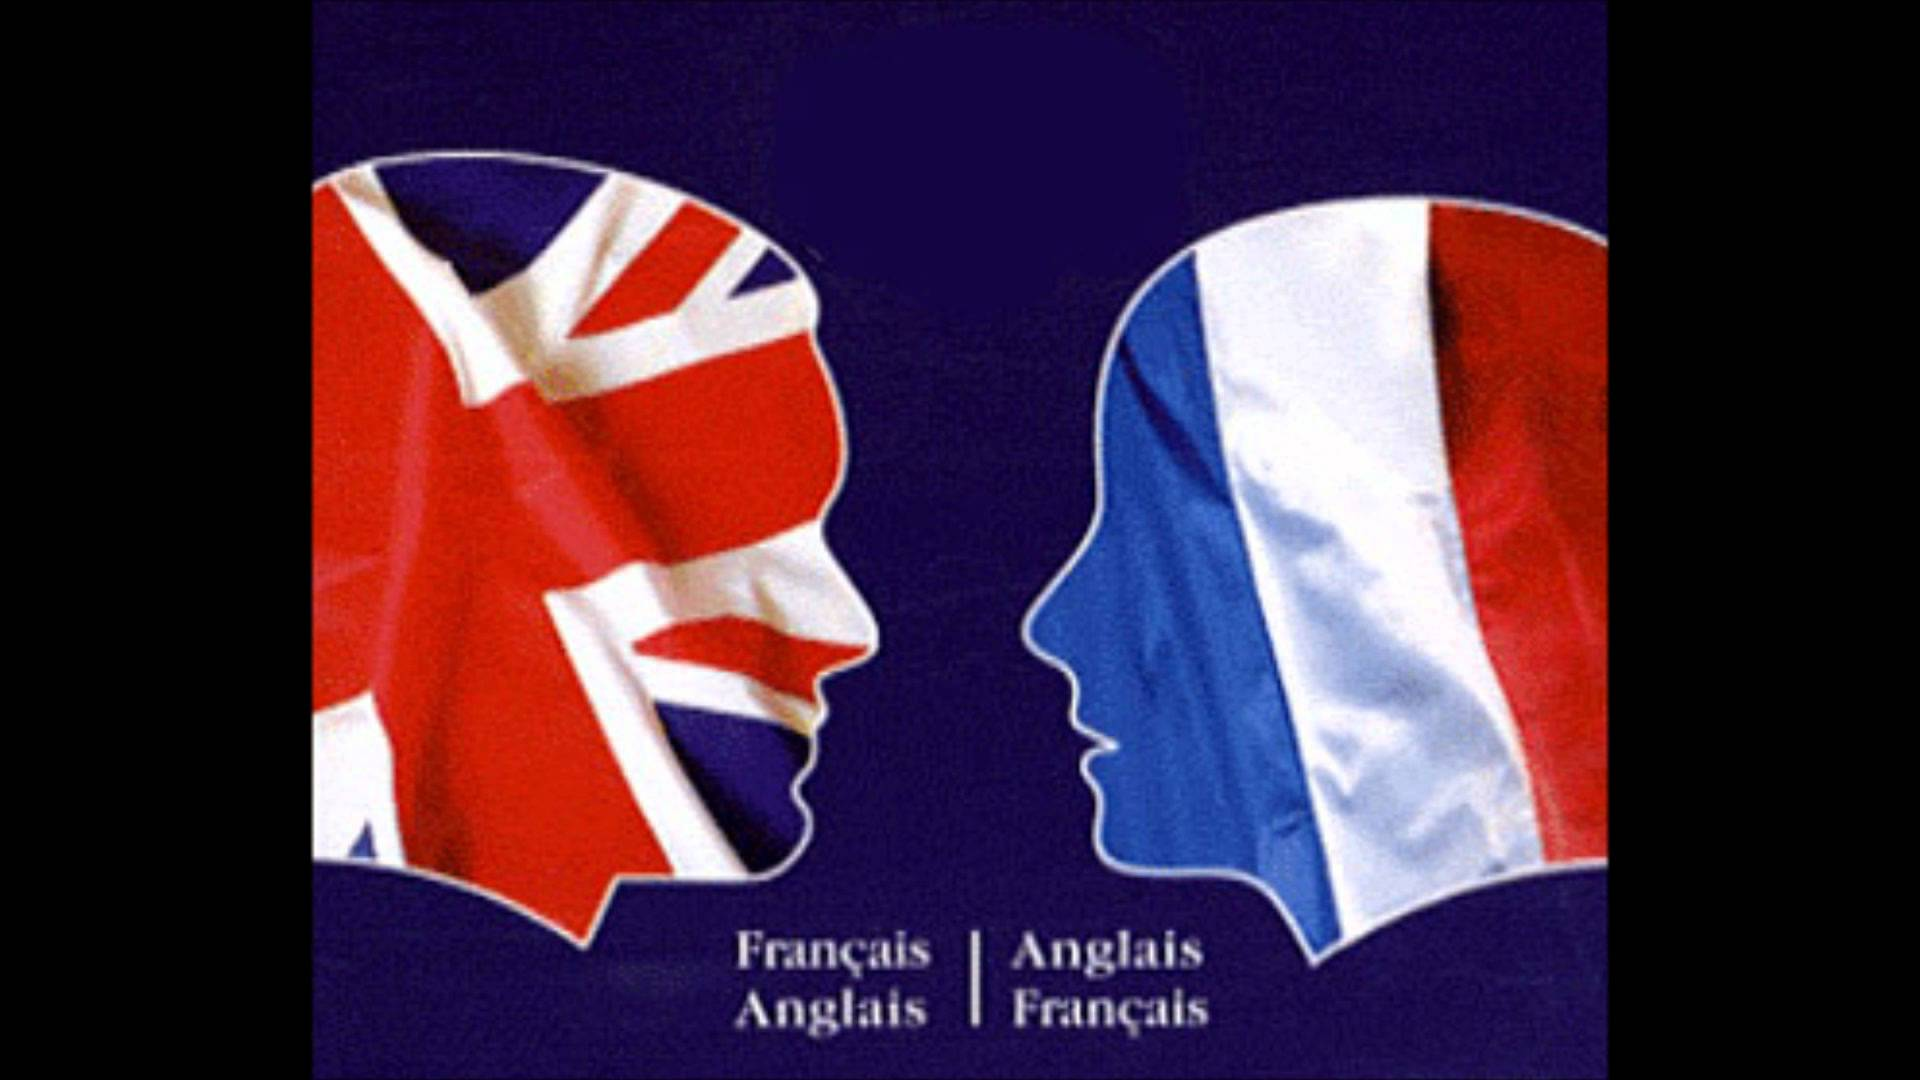 anglais traduction français